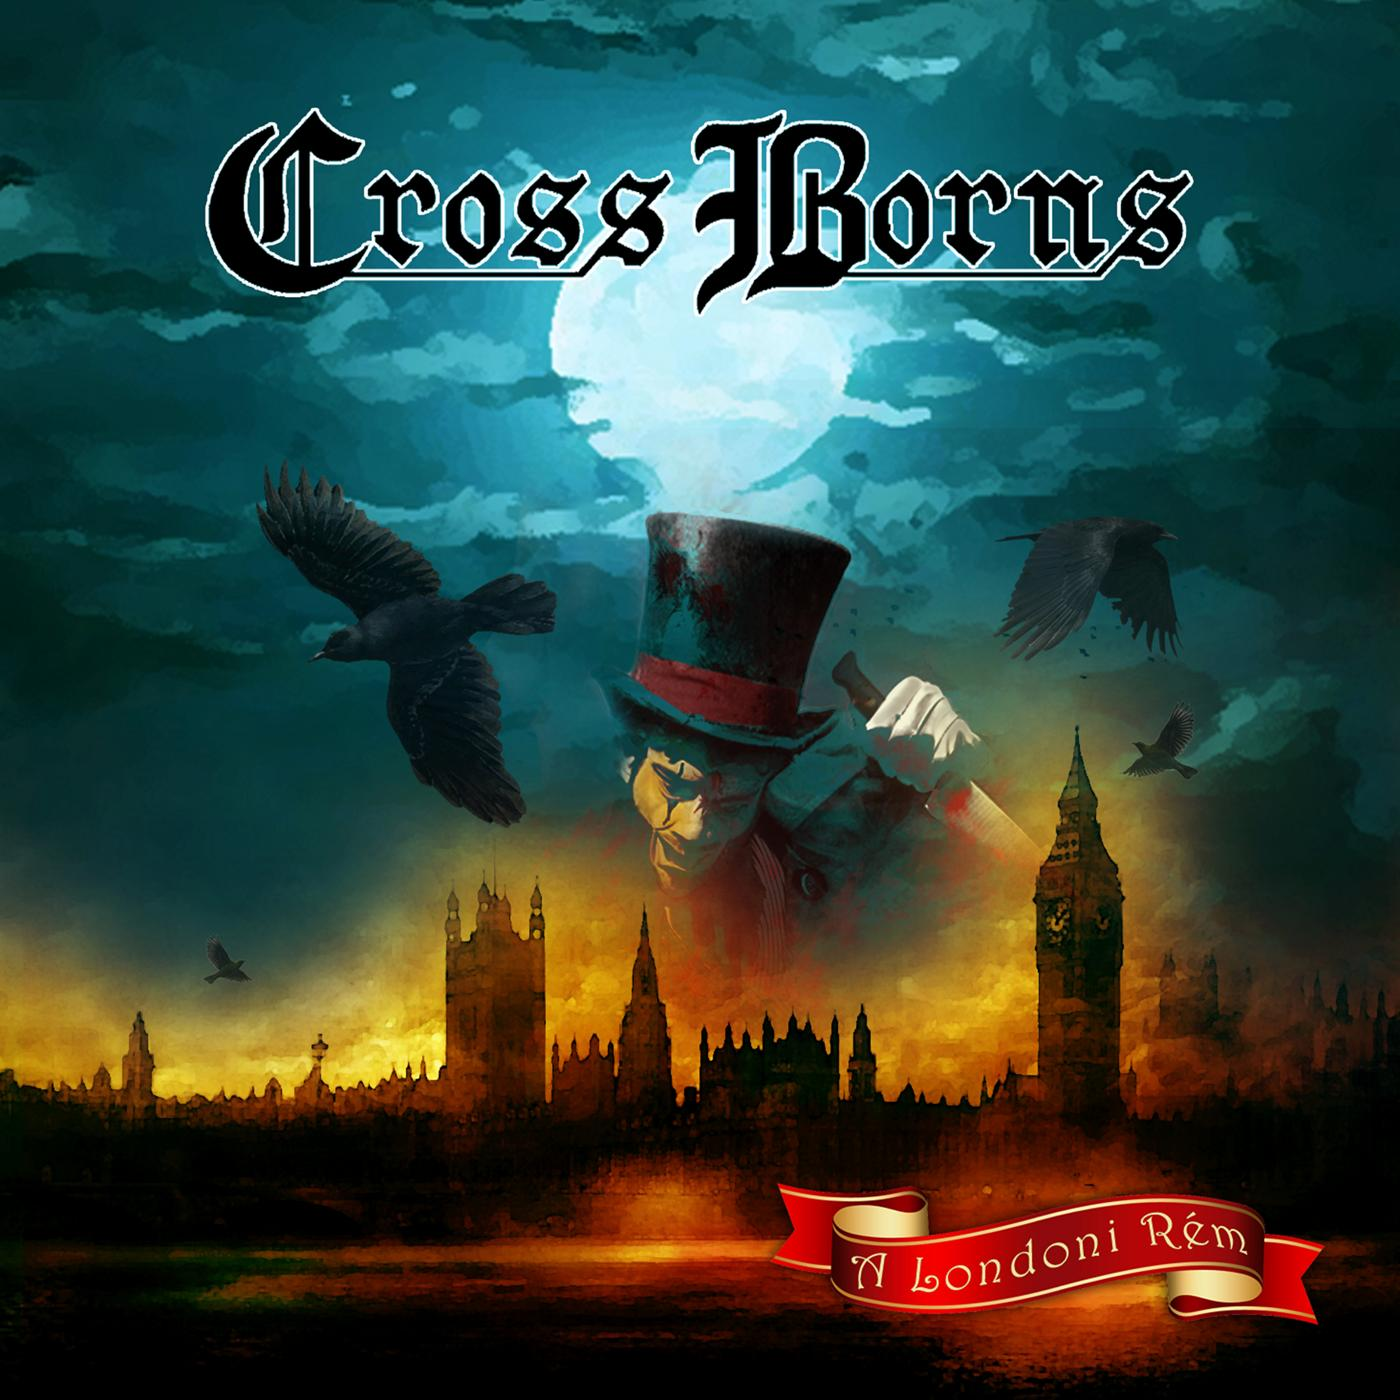 CROSS BORNS - A LONDONI RÉM - CROSS BORNS - CD -